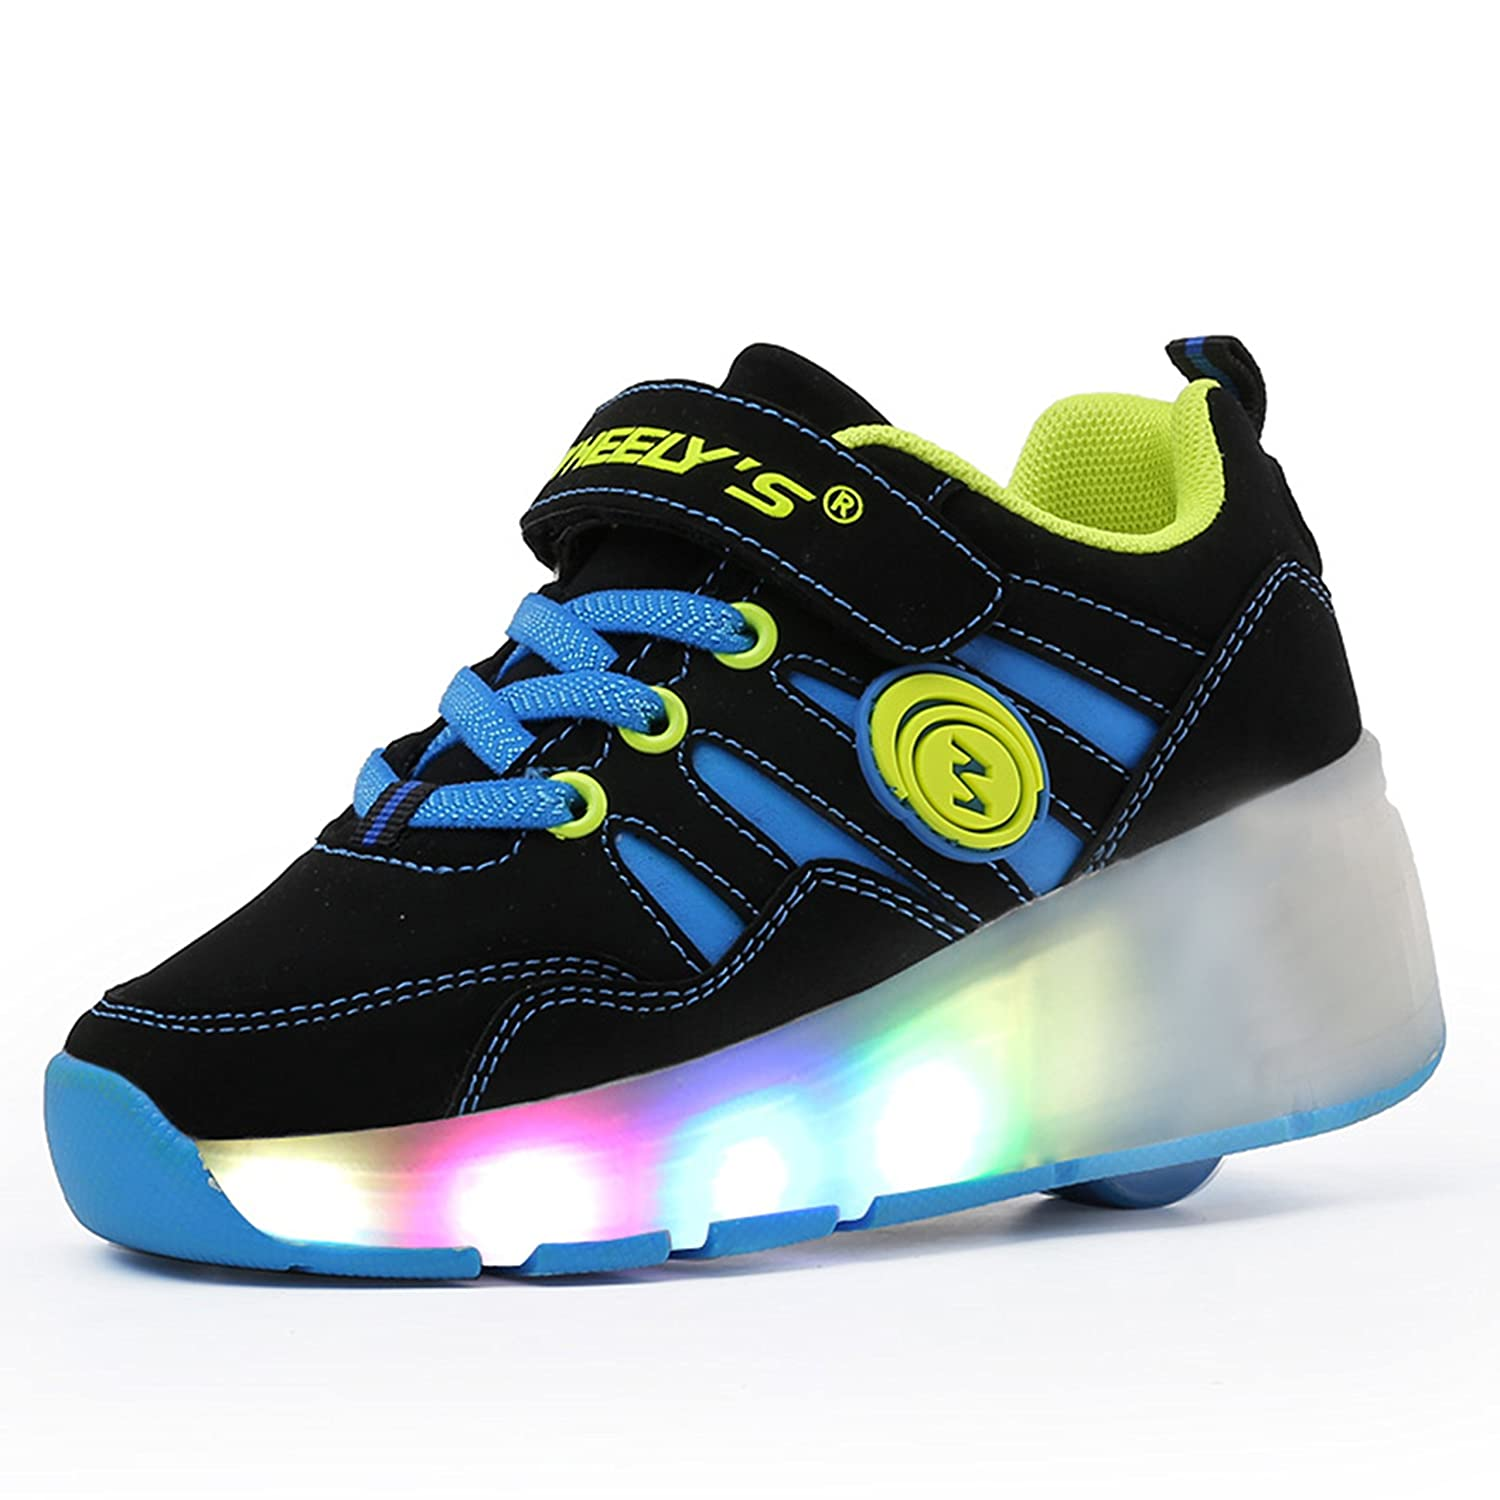 Pop out roller skate shoes - Meurry Unisex Kids Led Light Flashing Wheels Sneakers Auto Paragraph Roller Shoes Skates Sports Running